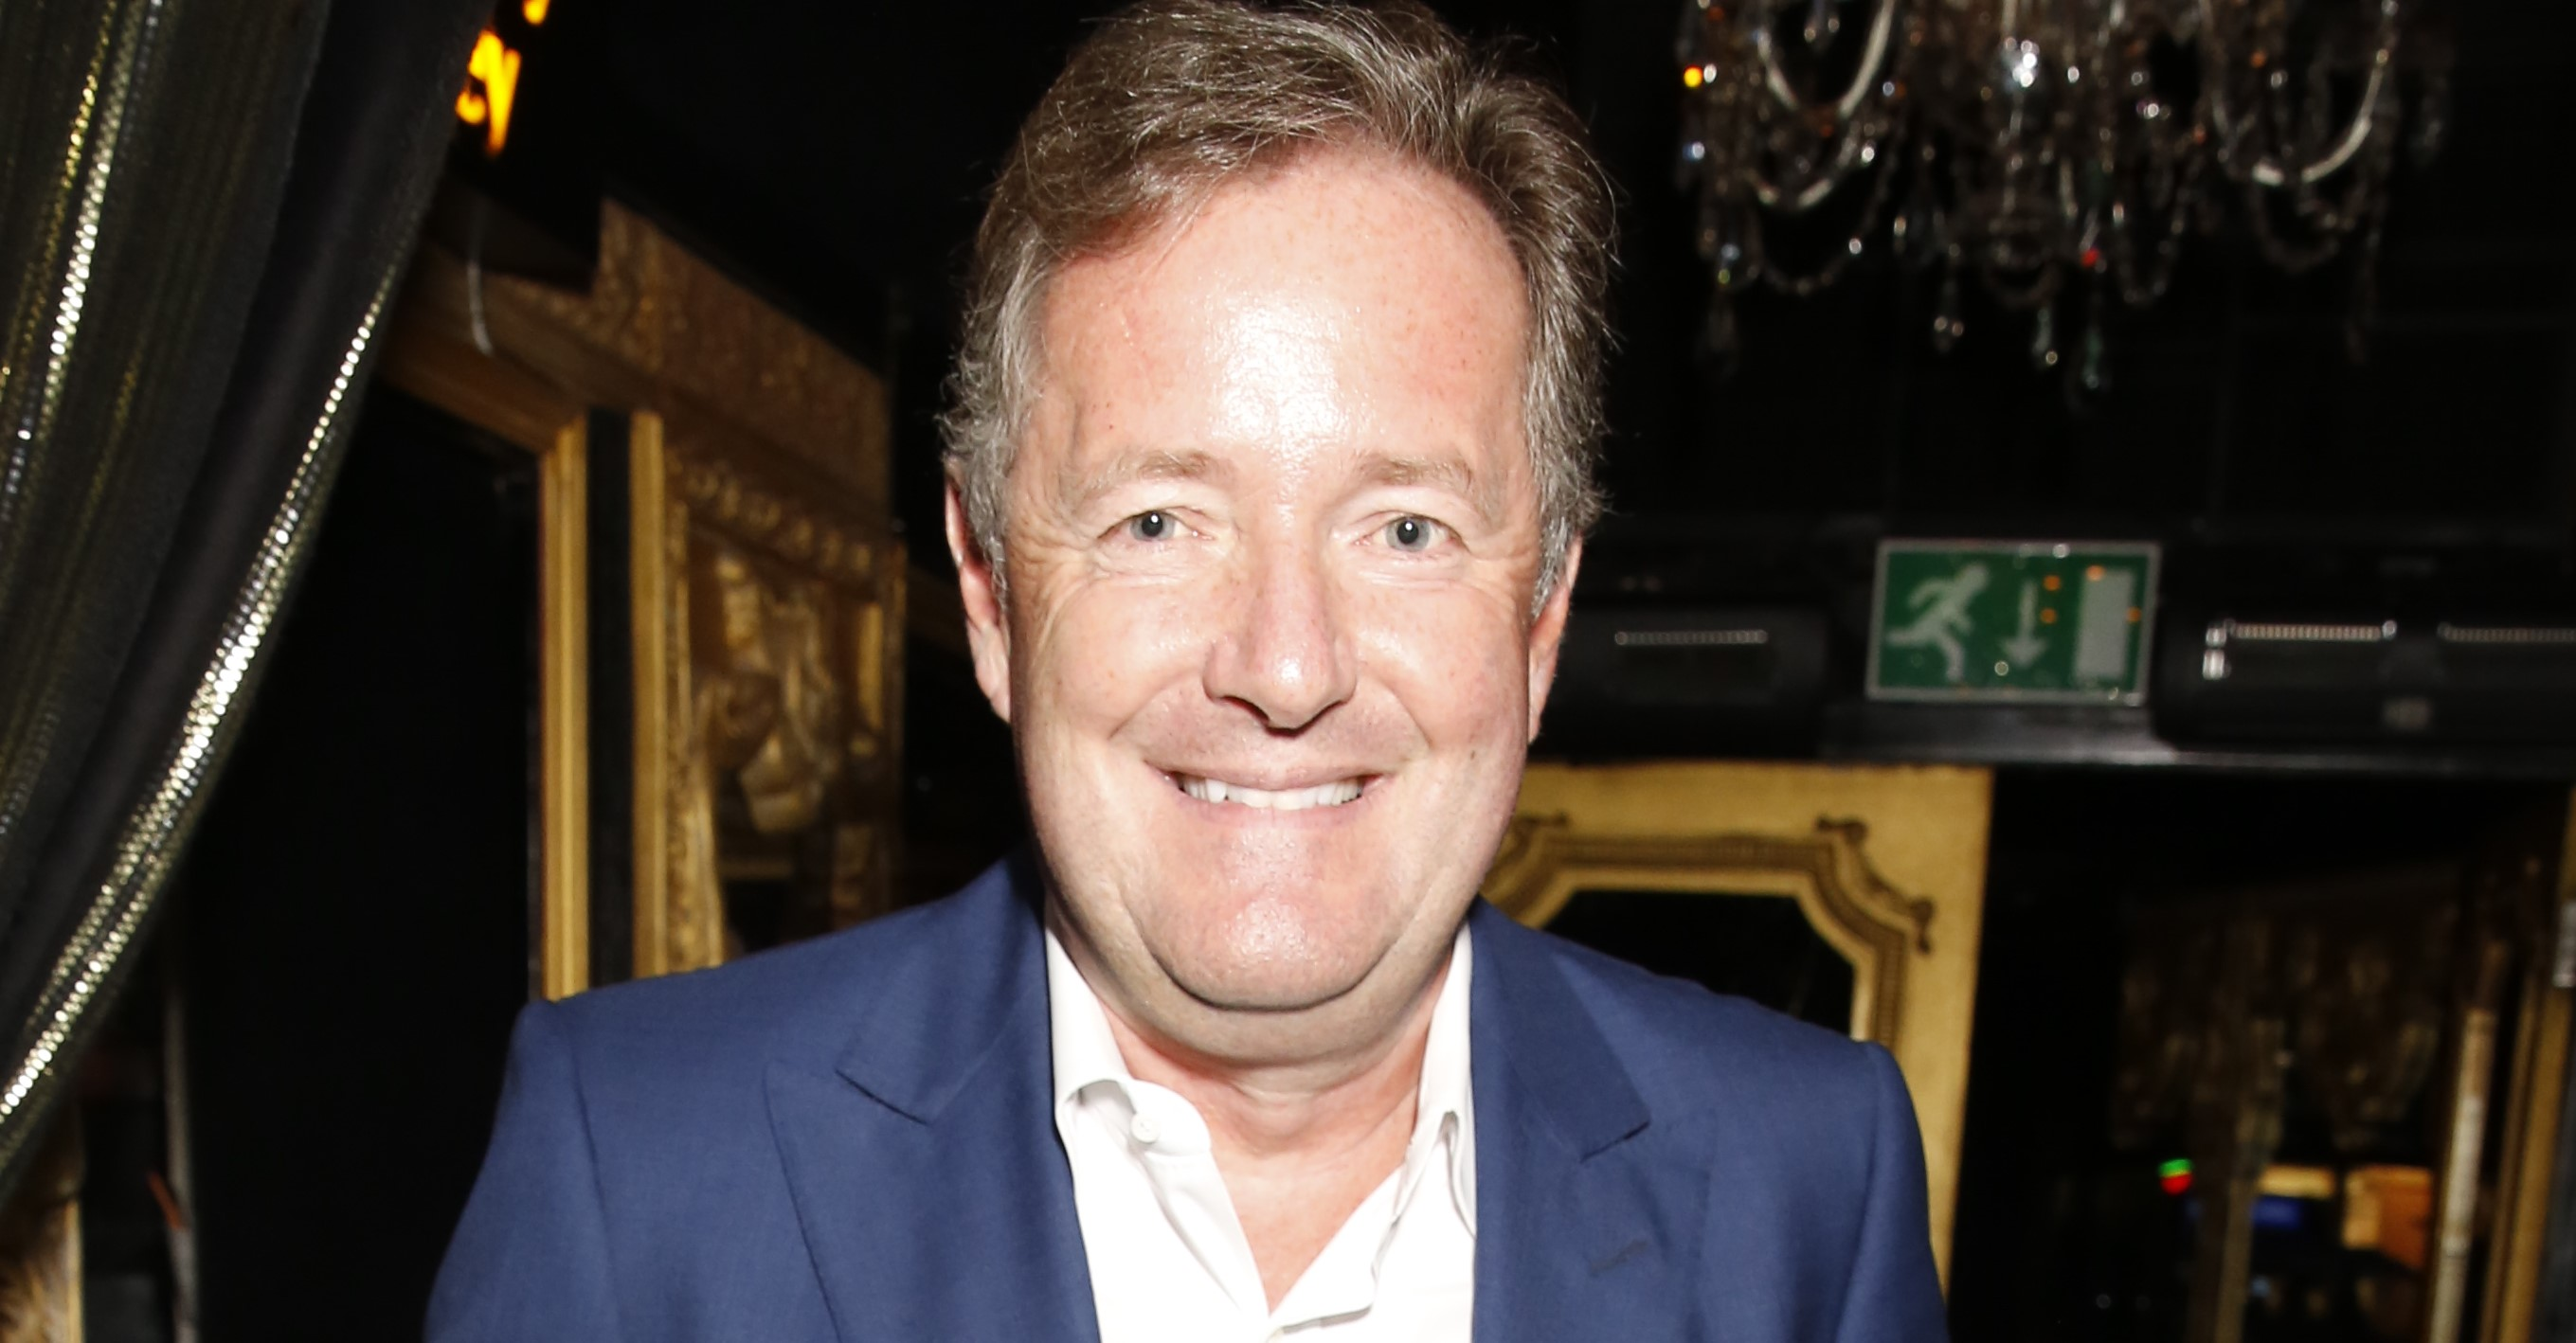 Piers Morgan delights fans with photo of eldest son and daughter in LA